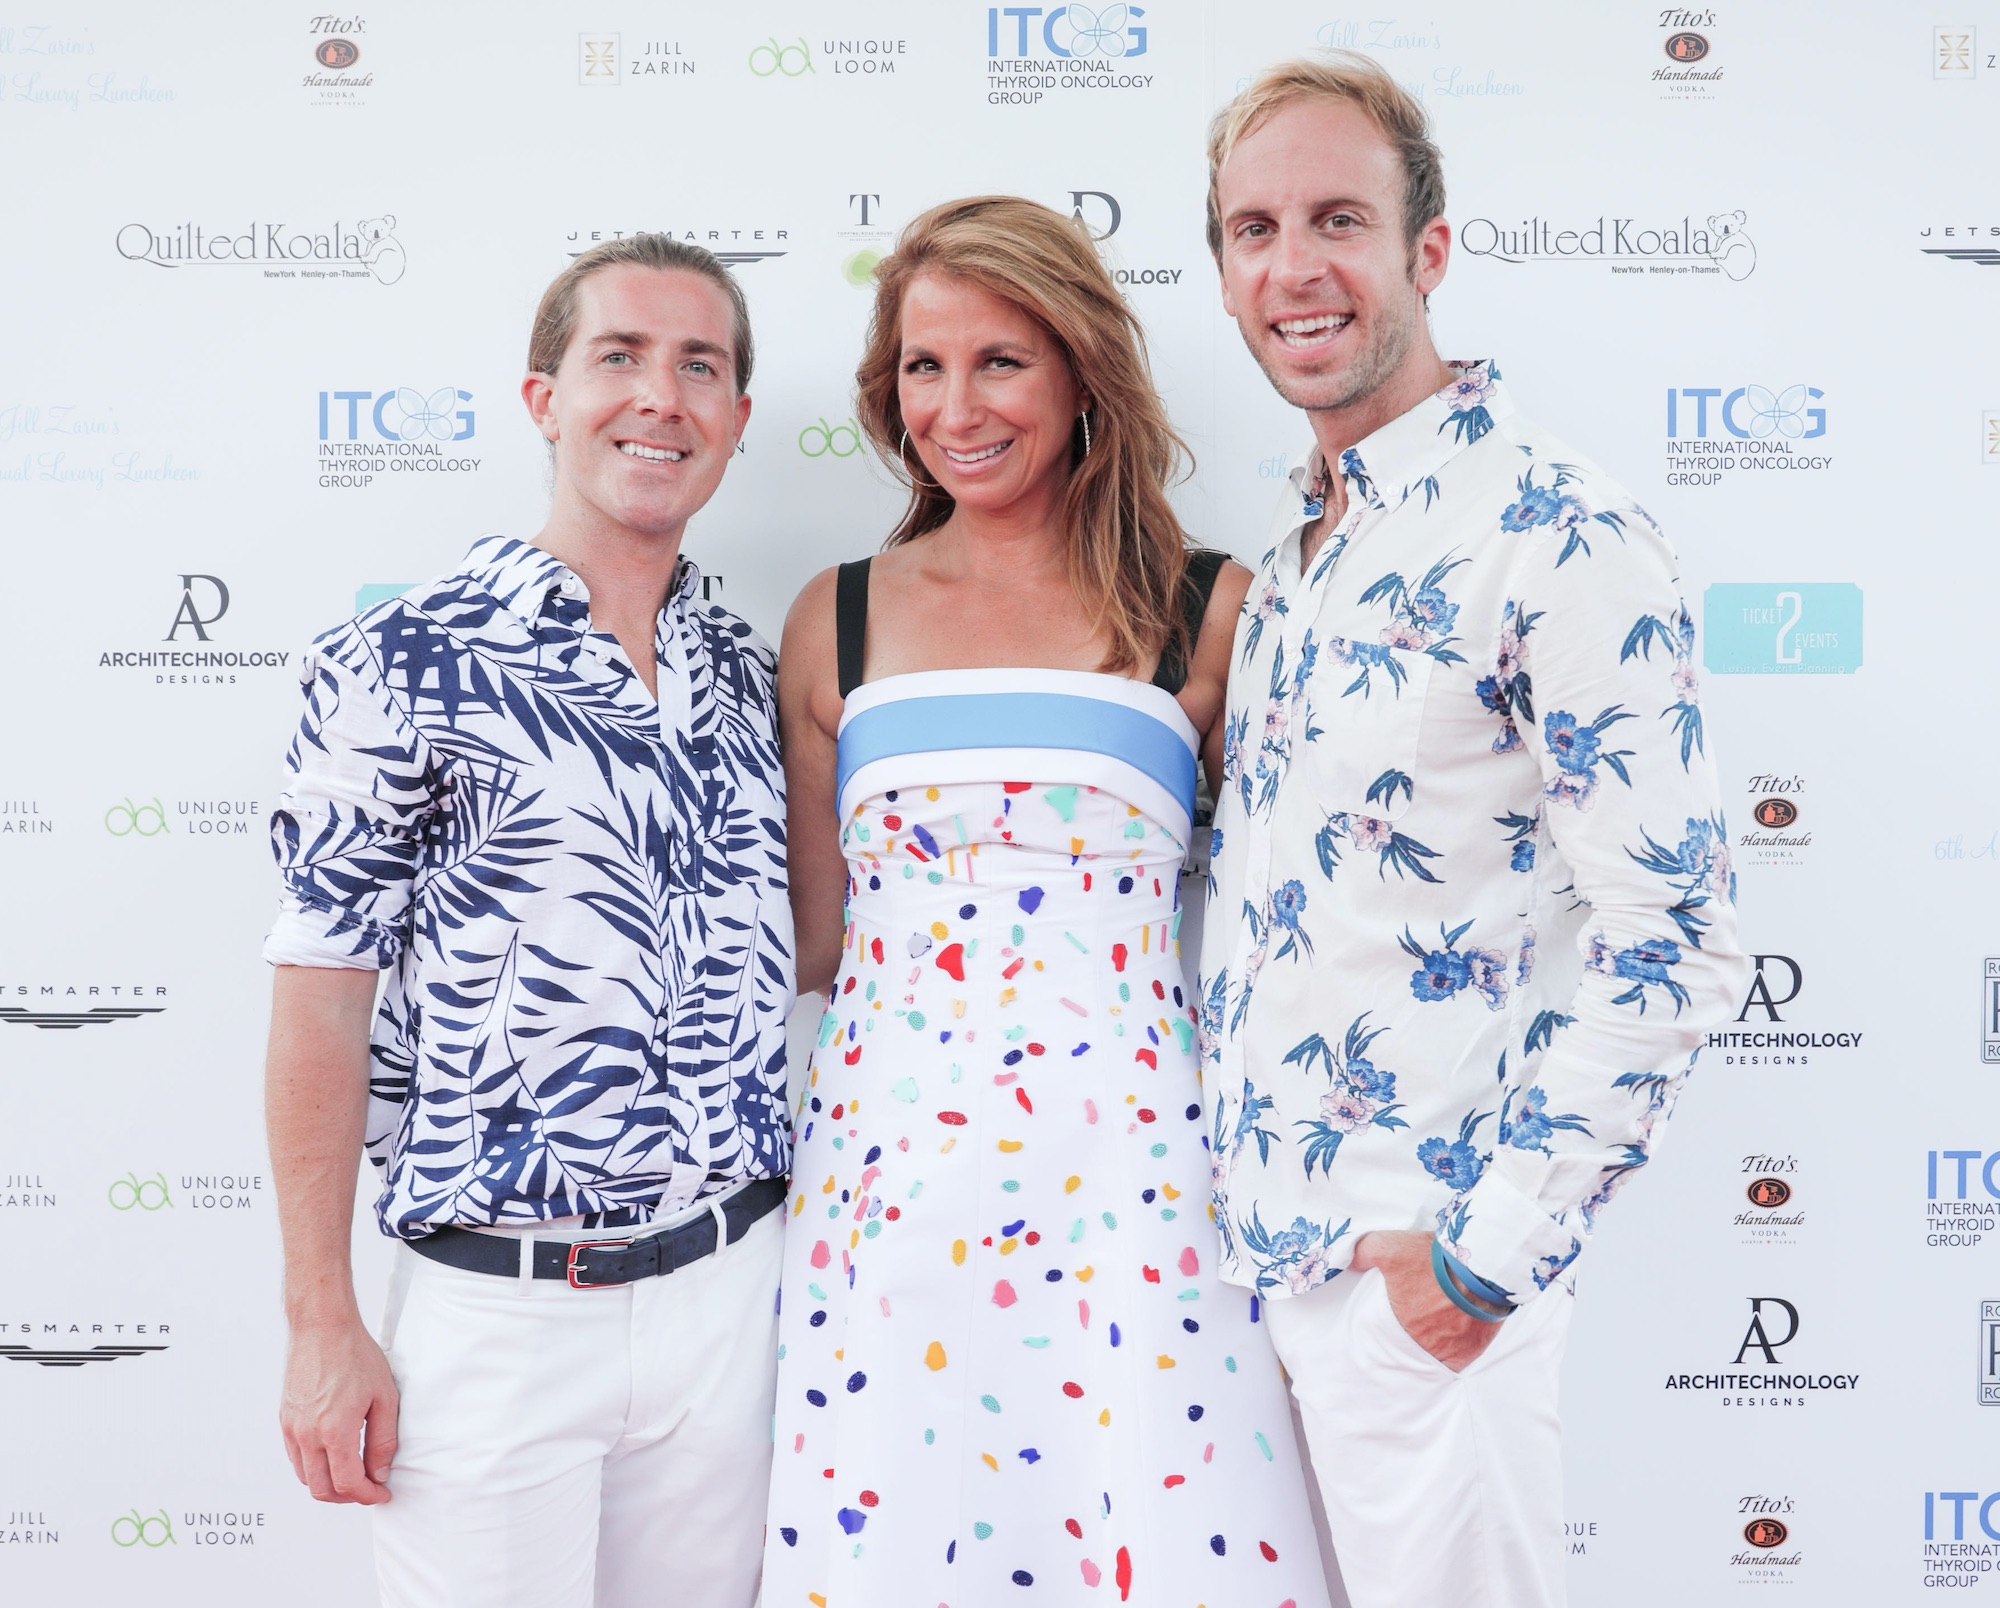 Sean Koski, Jill Zarin and Brian Kelly